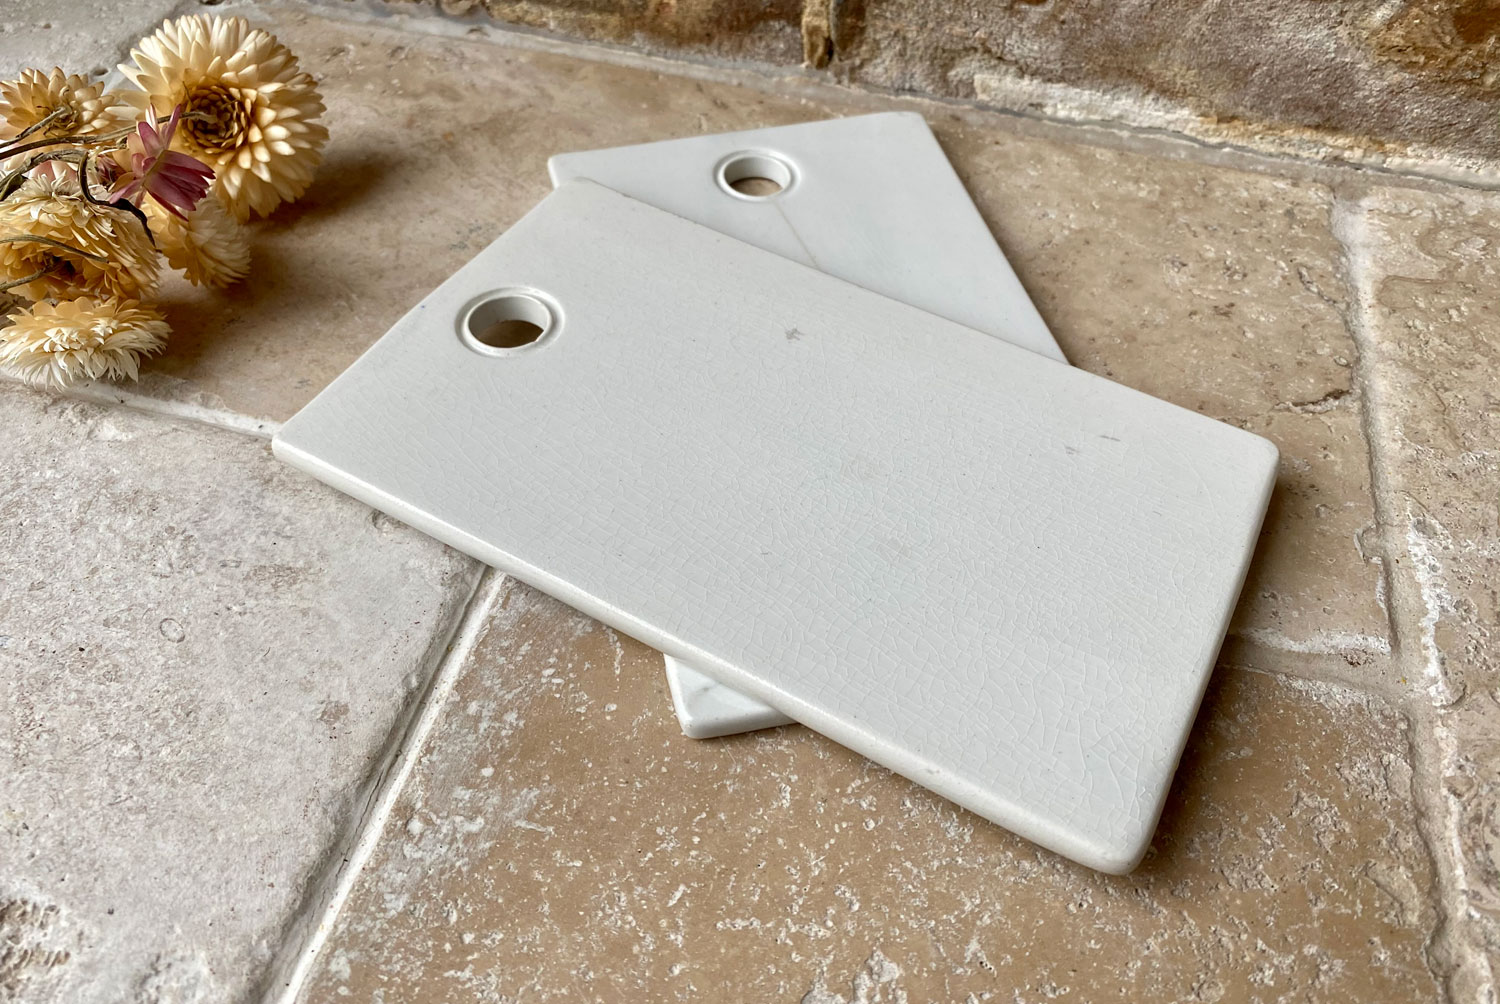 antique white ironstone whiteware ceramic onion cutting board serving platter plate cheeseboard